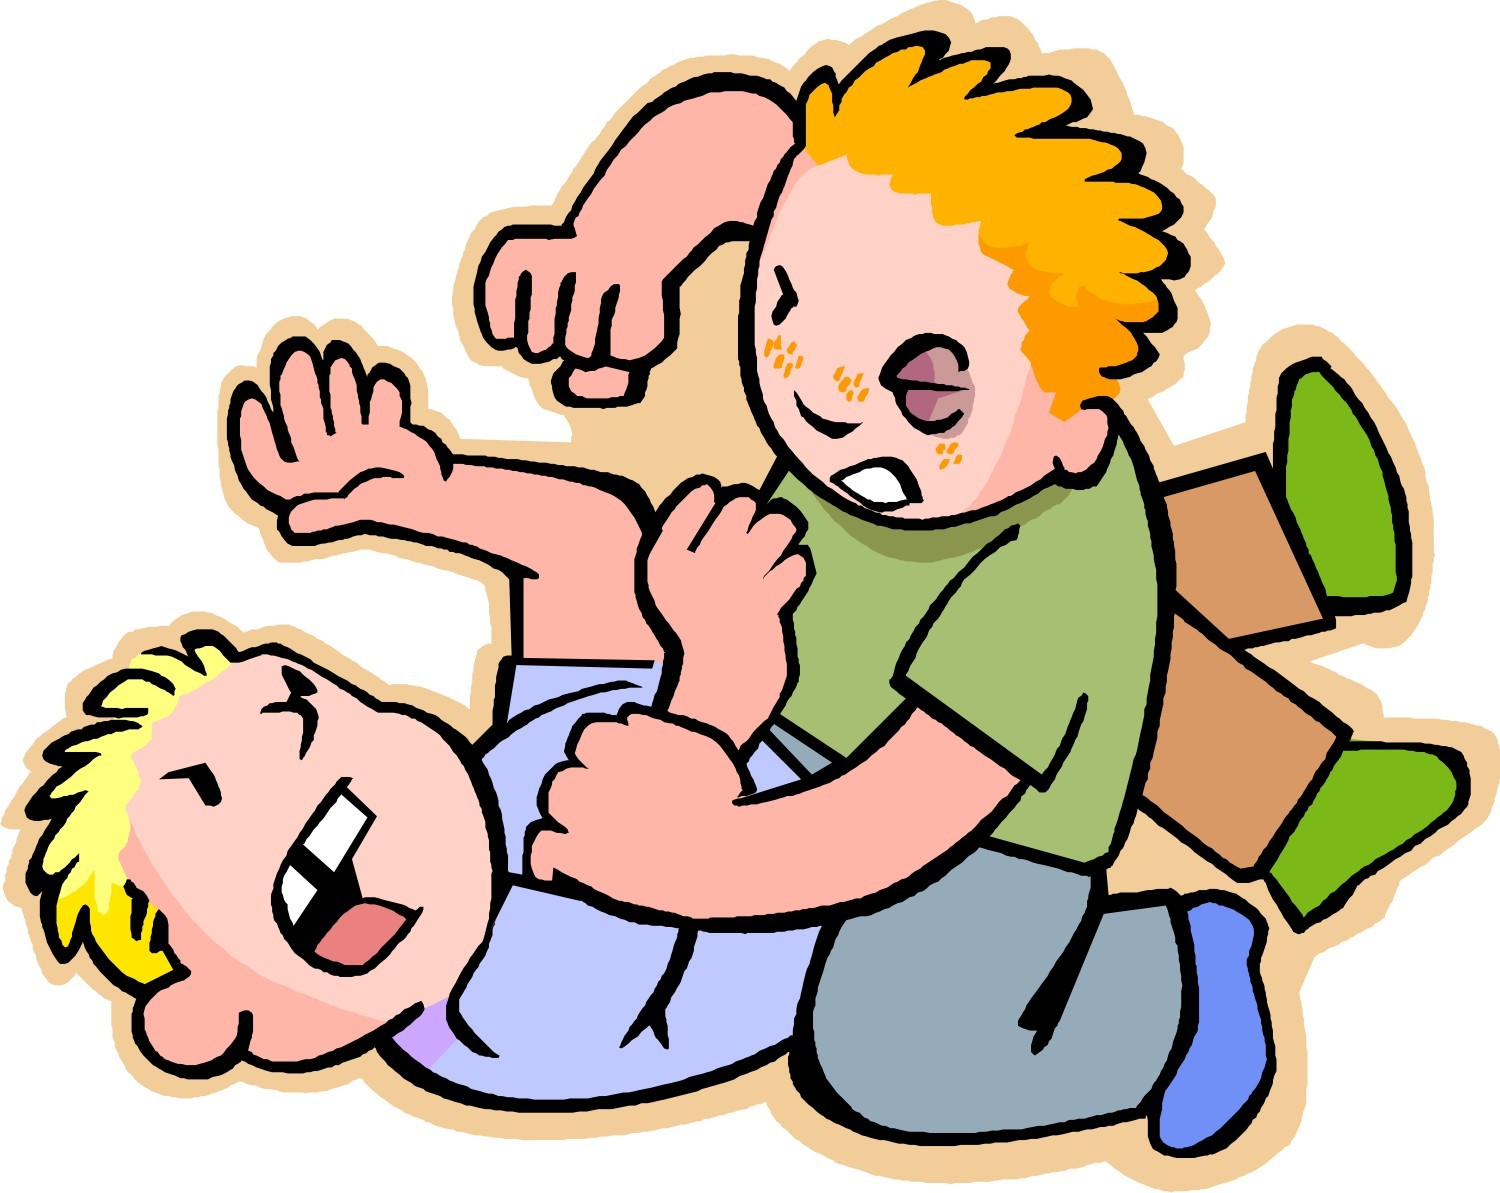 clipart Fighting clipart. Free students cliparts download